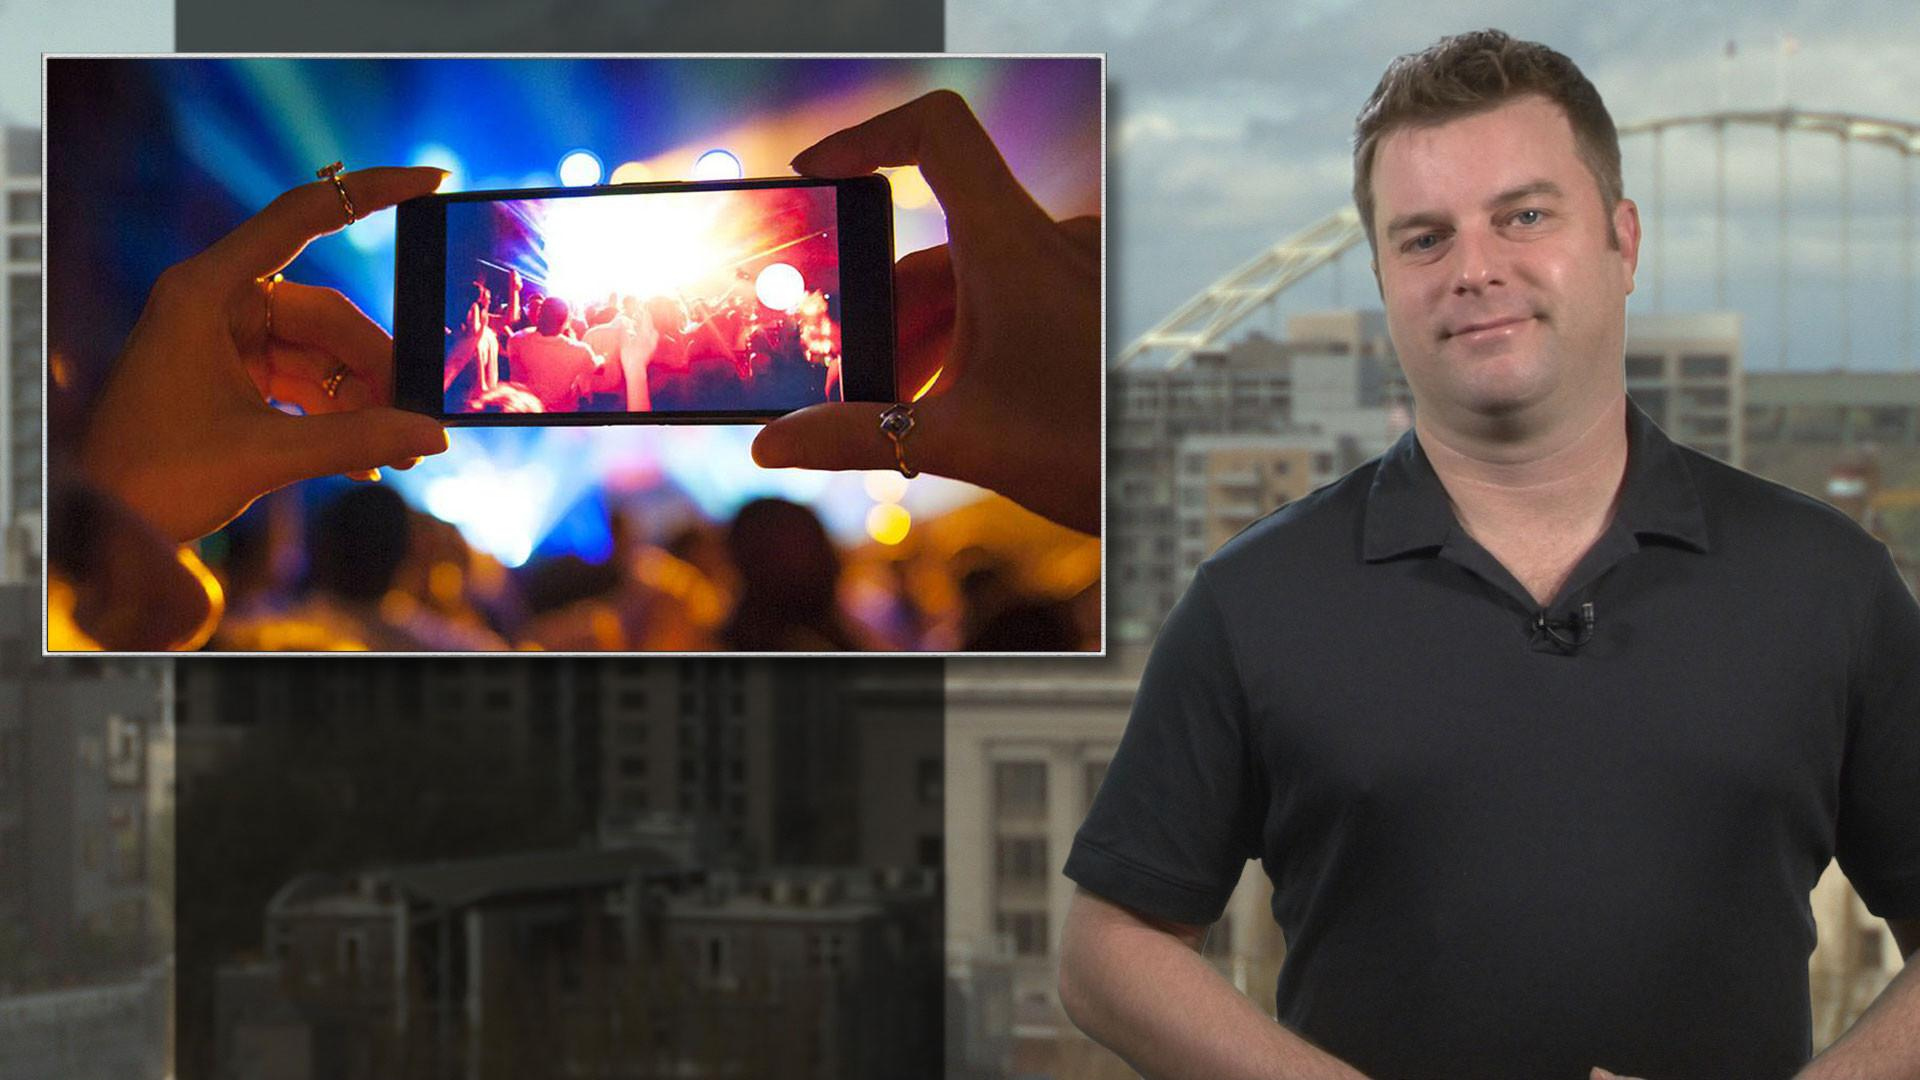 Apple wants to bust your bootlegs by blocking iPhone video recording at concerts